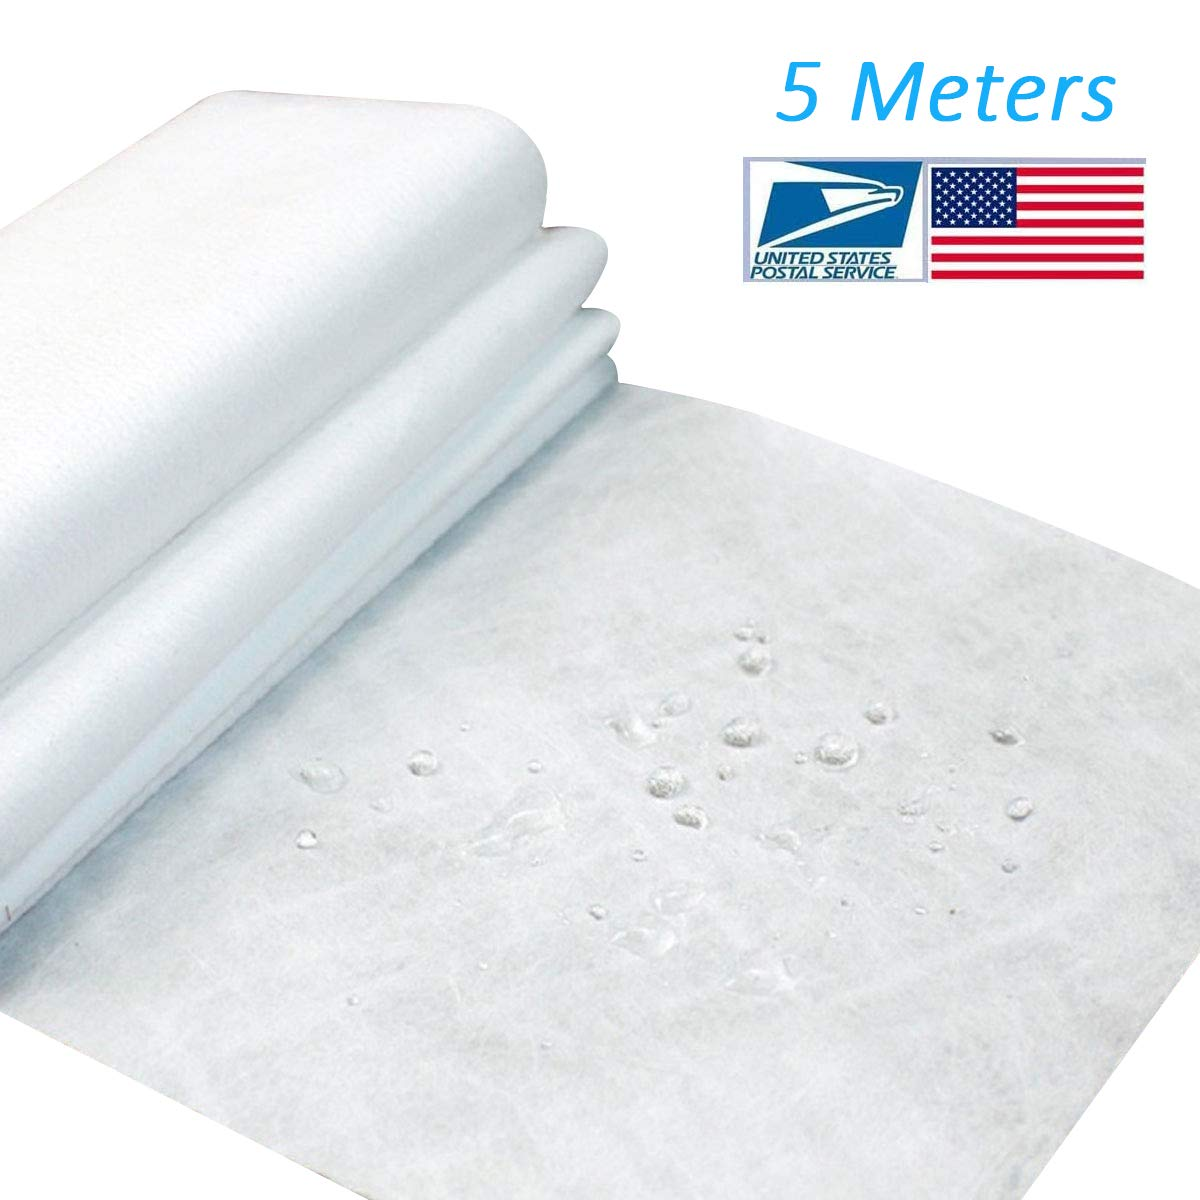 Non-Woven Fabric Microfiber Melt-Blown Cloth, Disposable Middle Layer Filter Fabric Polypropylene Sediment Filters for Filtering Layer Application, Filtering Efficiency Greater Than 95% (5M)